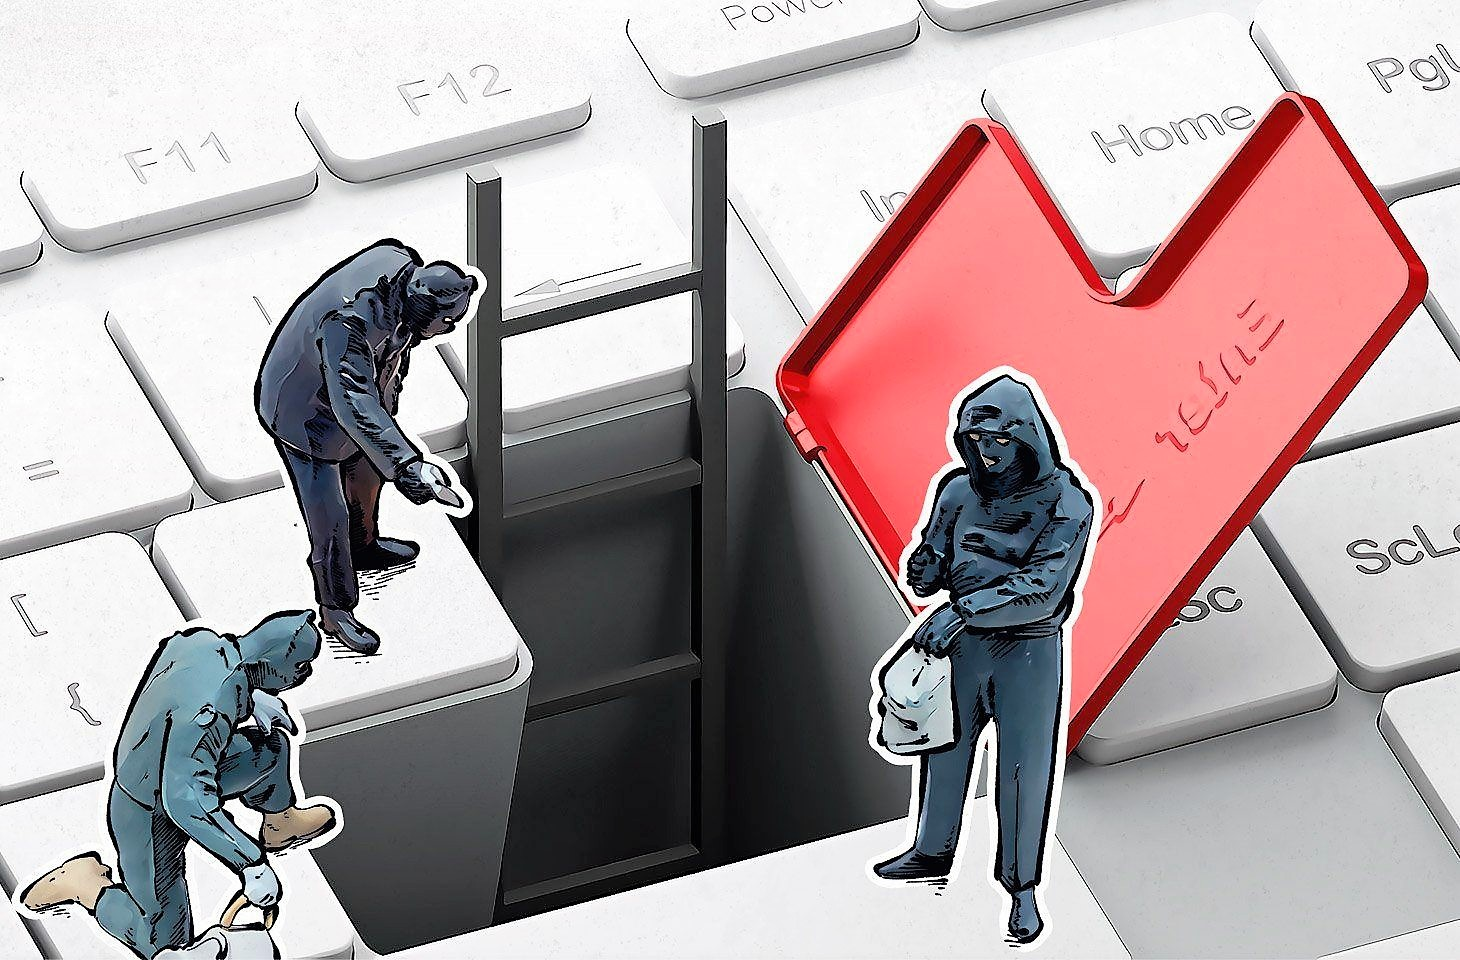 Kaspersky Lab Says Chafer Cyberespionage Group Targets Embassies with Spyware